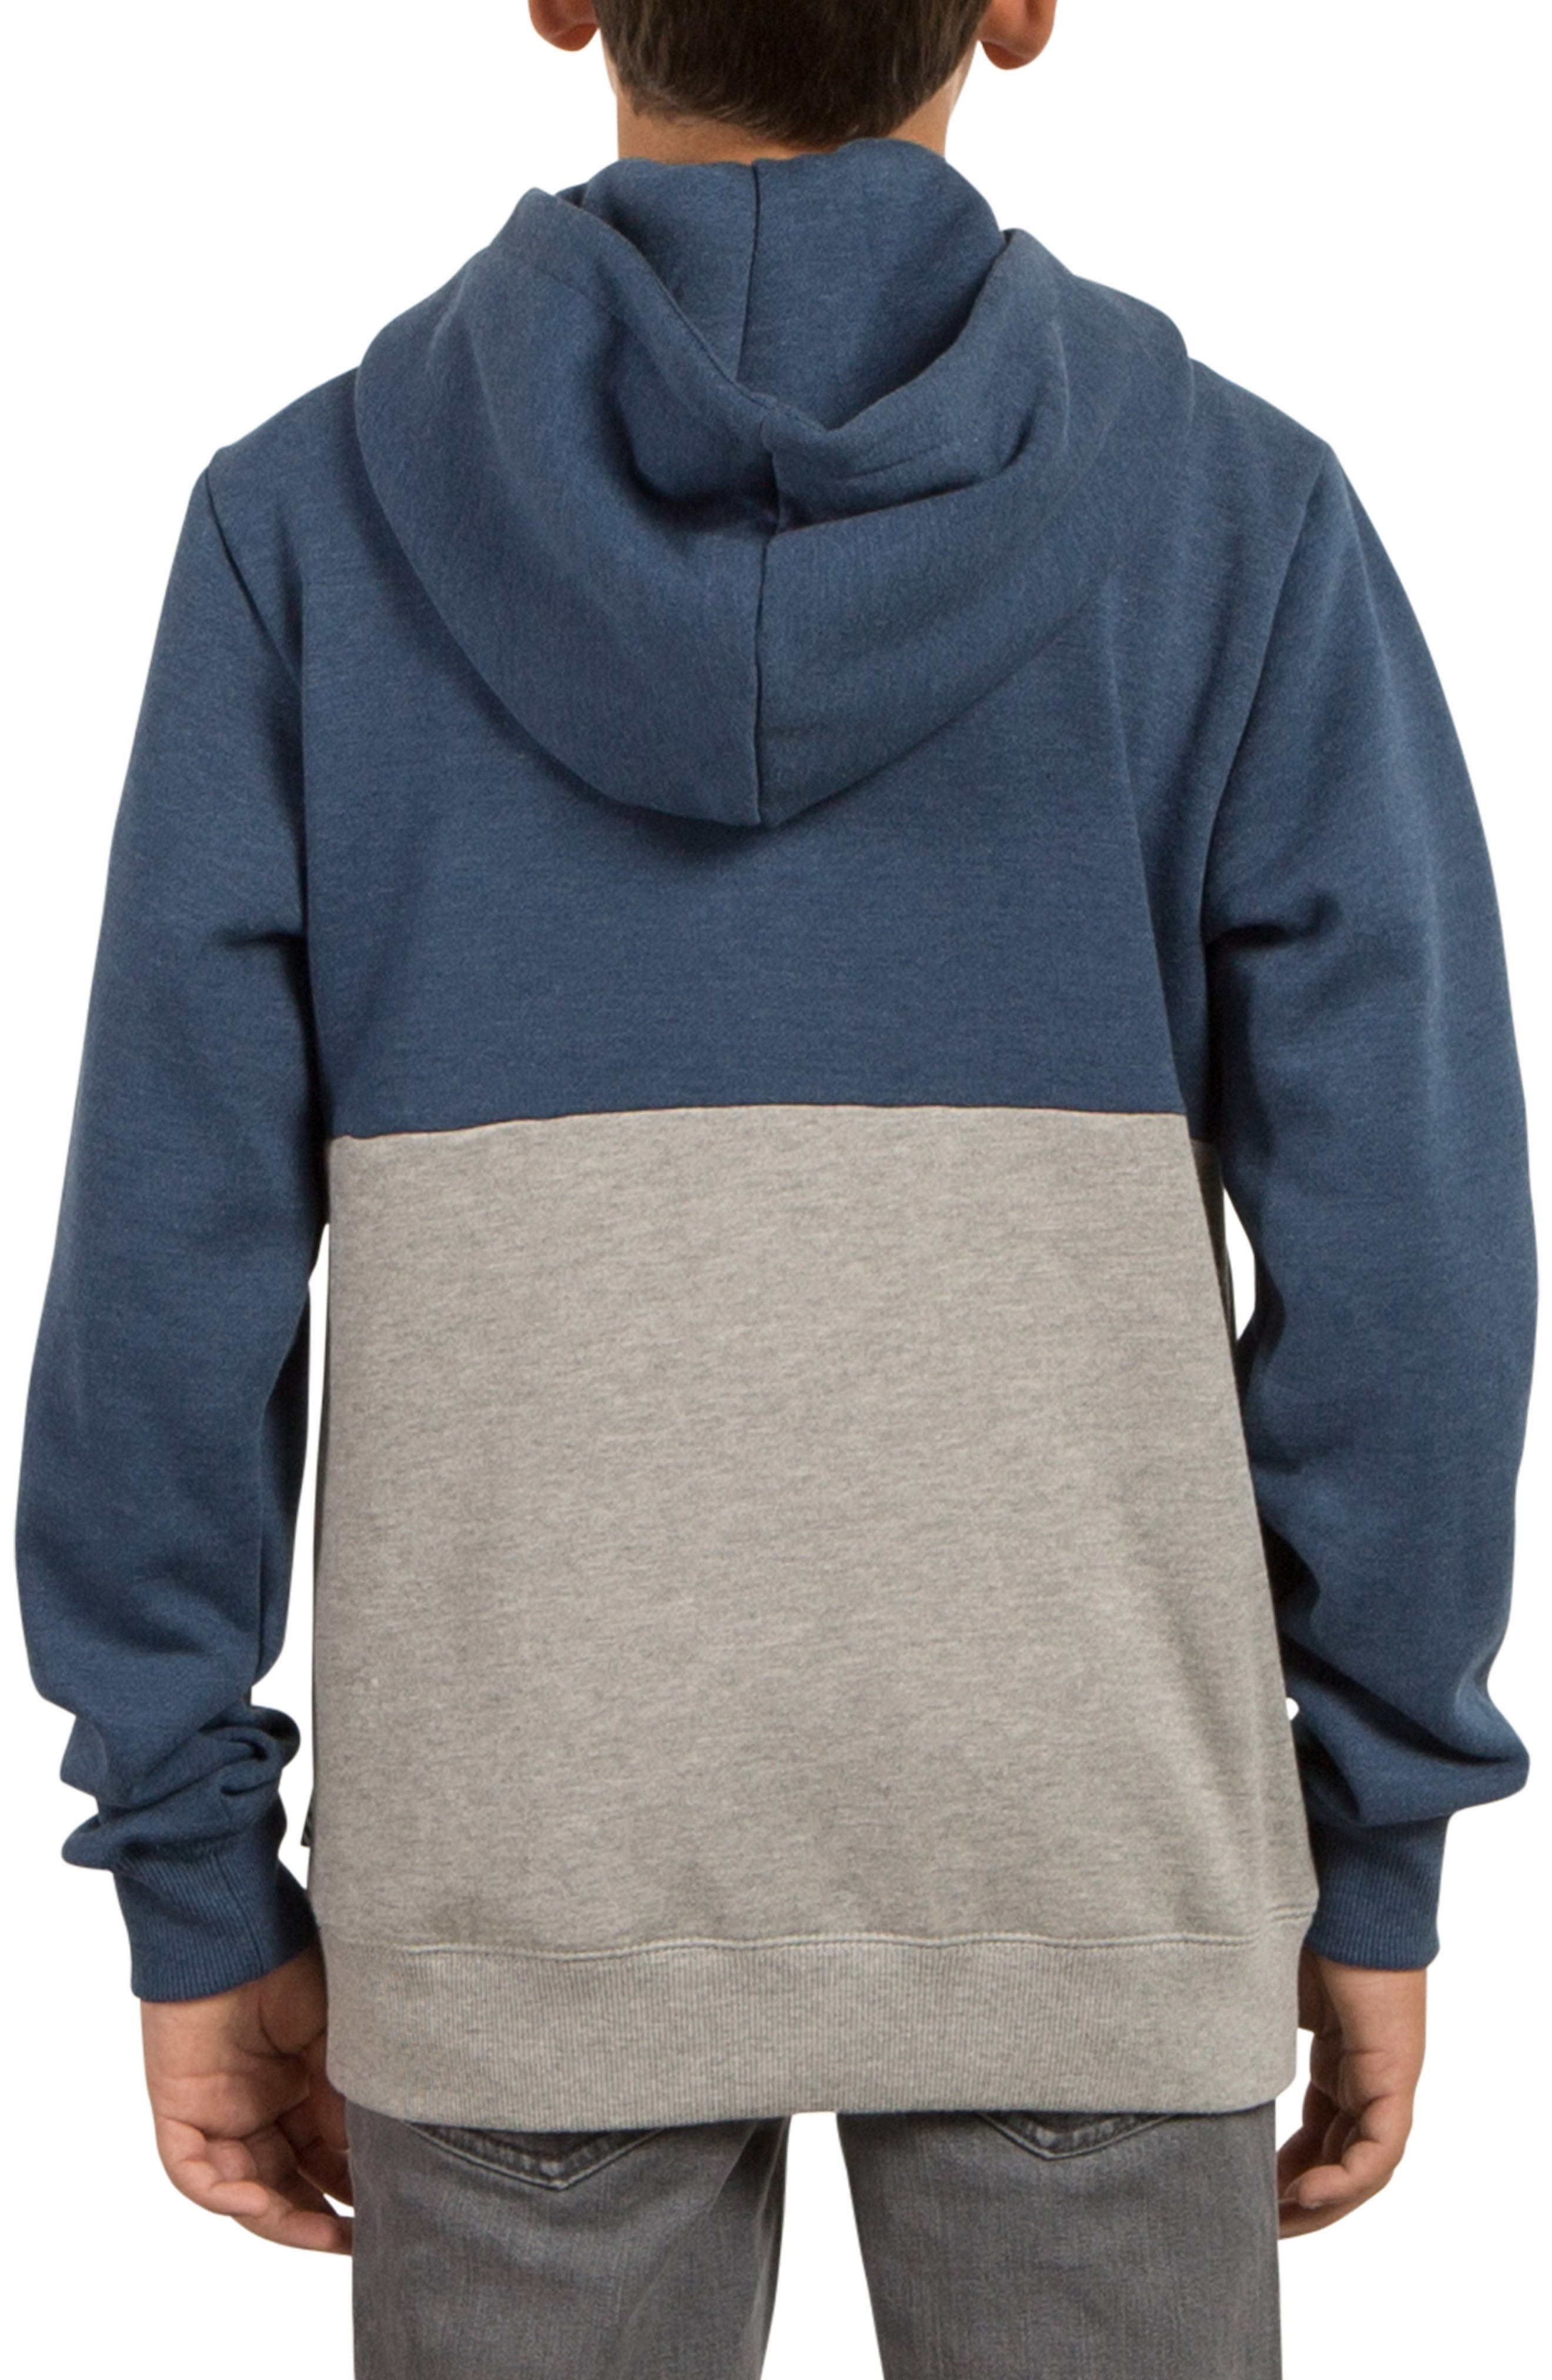 Single Stone Division Zip-Up Hoodie,                             Alternate thumbnail 2, color,                             490